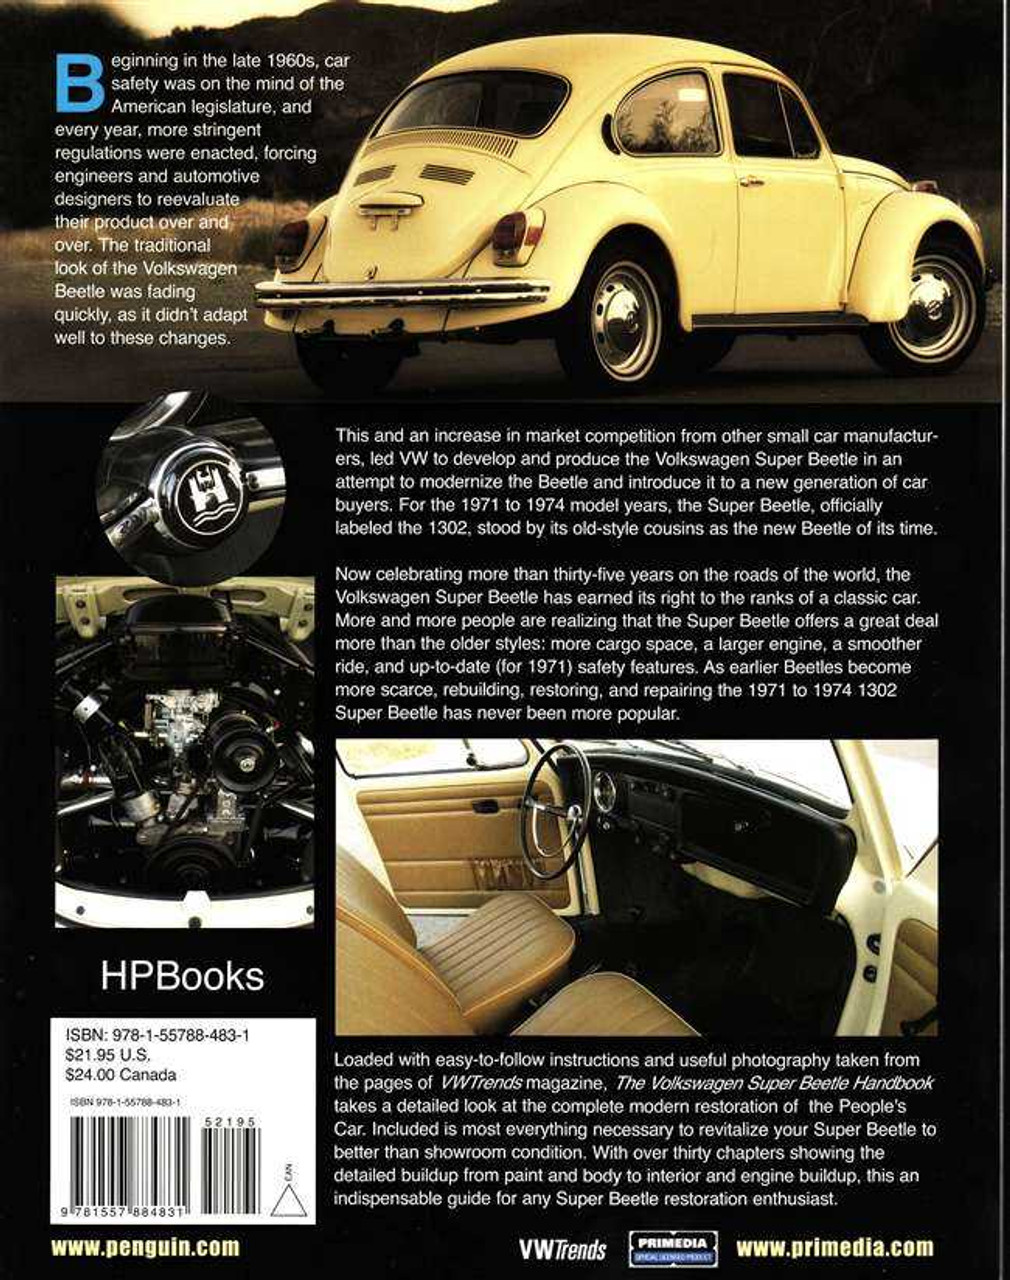 Funky Old Car Buyers Guide Sketch - Classic Cars Ideas - boiq.info